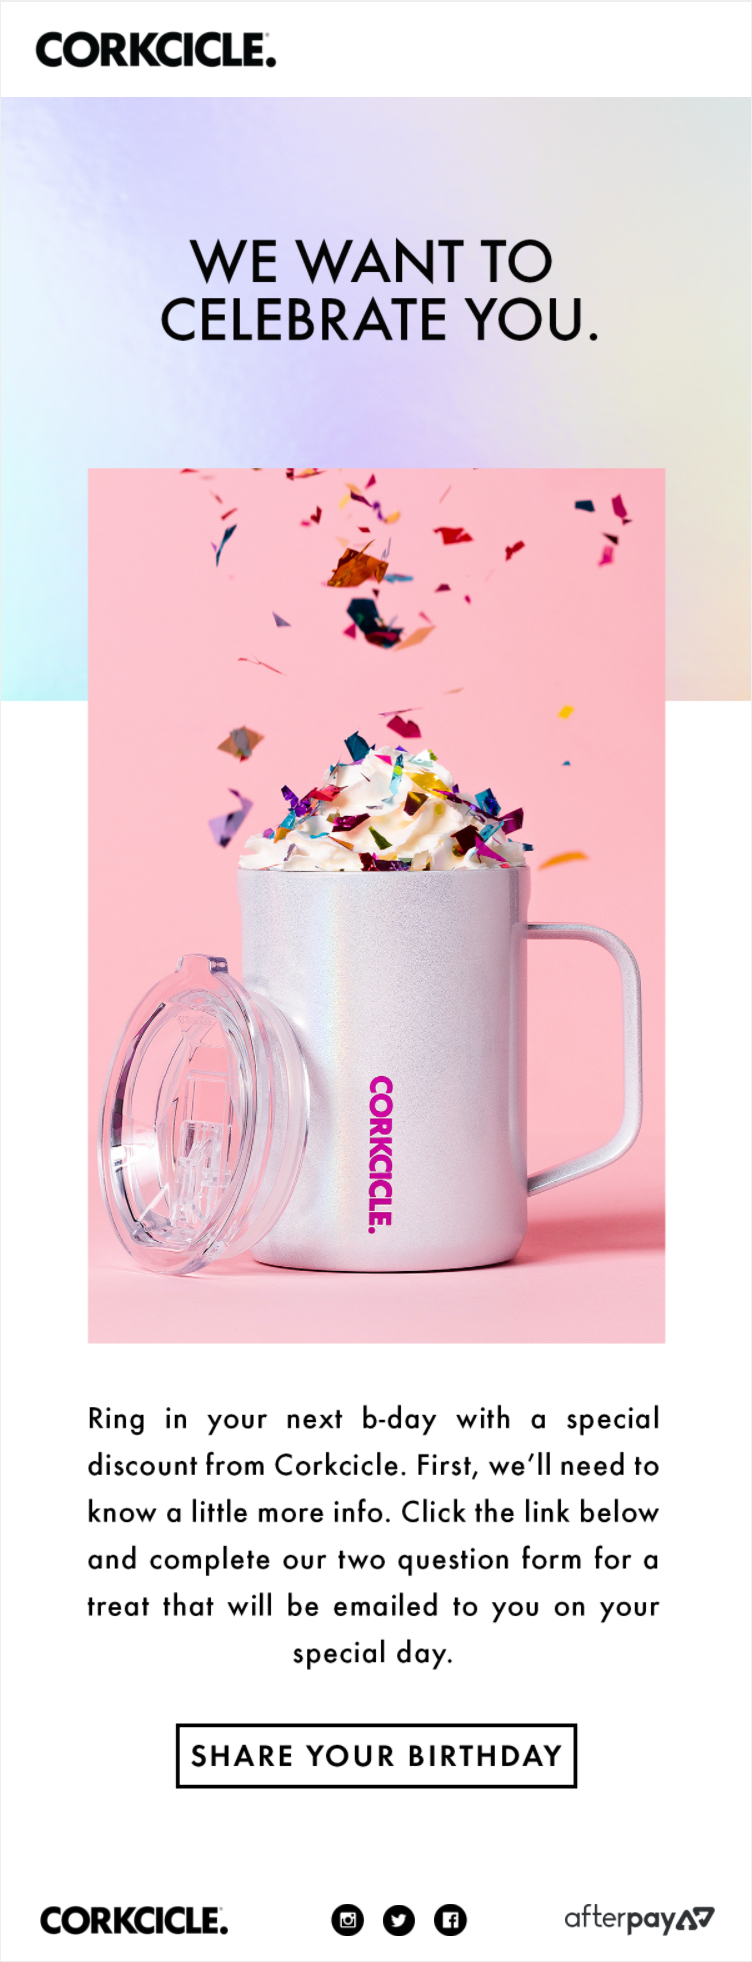 corkcicle-want-a-birthday-treat-form-now-working-our-apologies